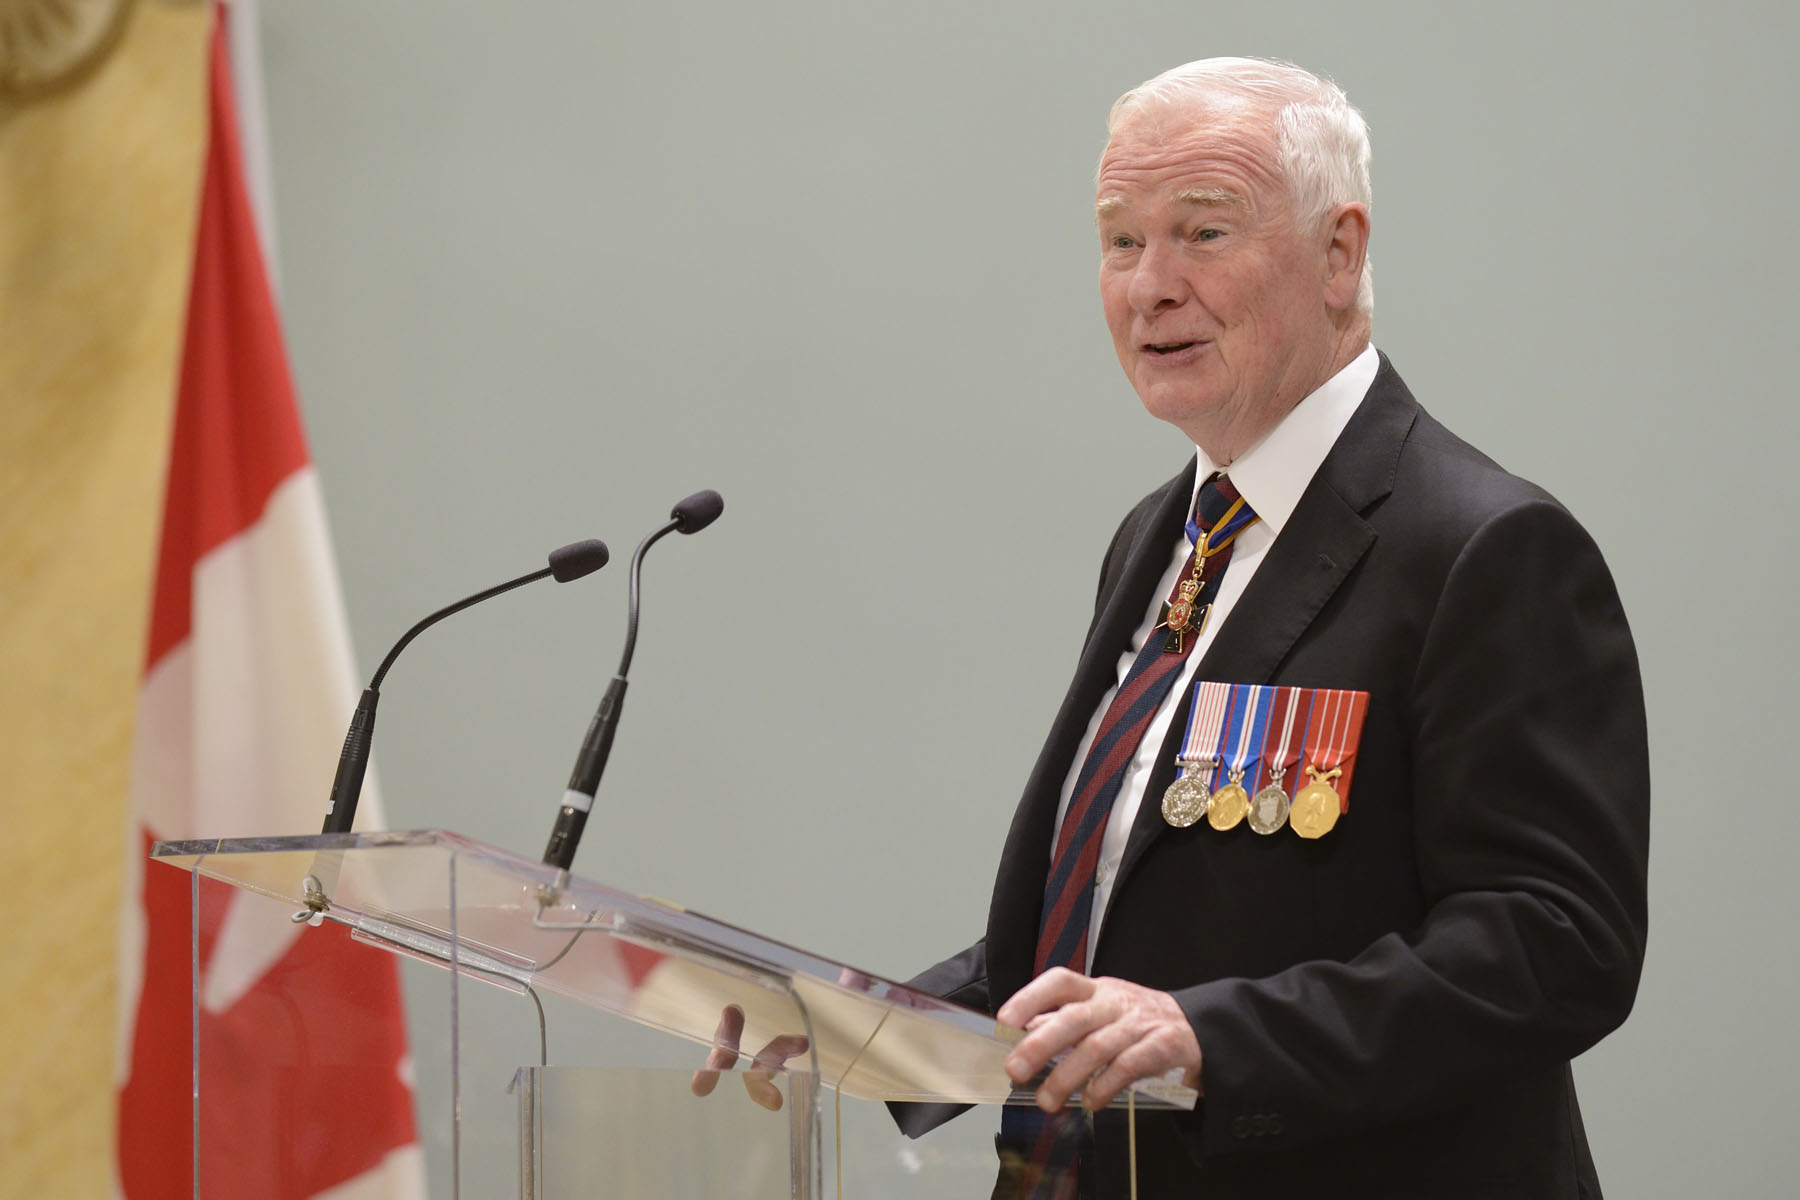 His Excellency the Right Honourable David Johnston, Governor General and Commander-in-Chief of Canada and patron of The Royal Canadian Legion, hosted the 2014 National Poppy Campaign ceremony at Rideau Hall on October 21, 2014.